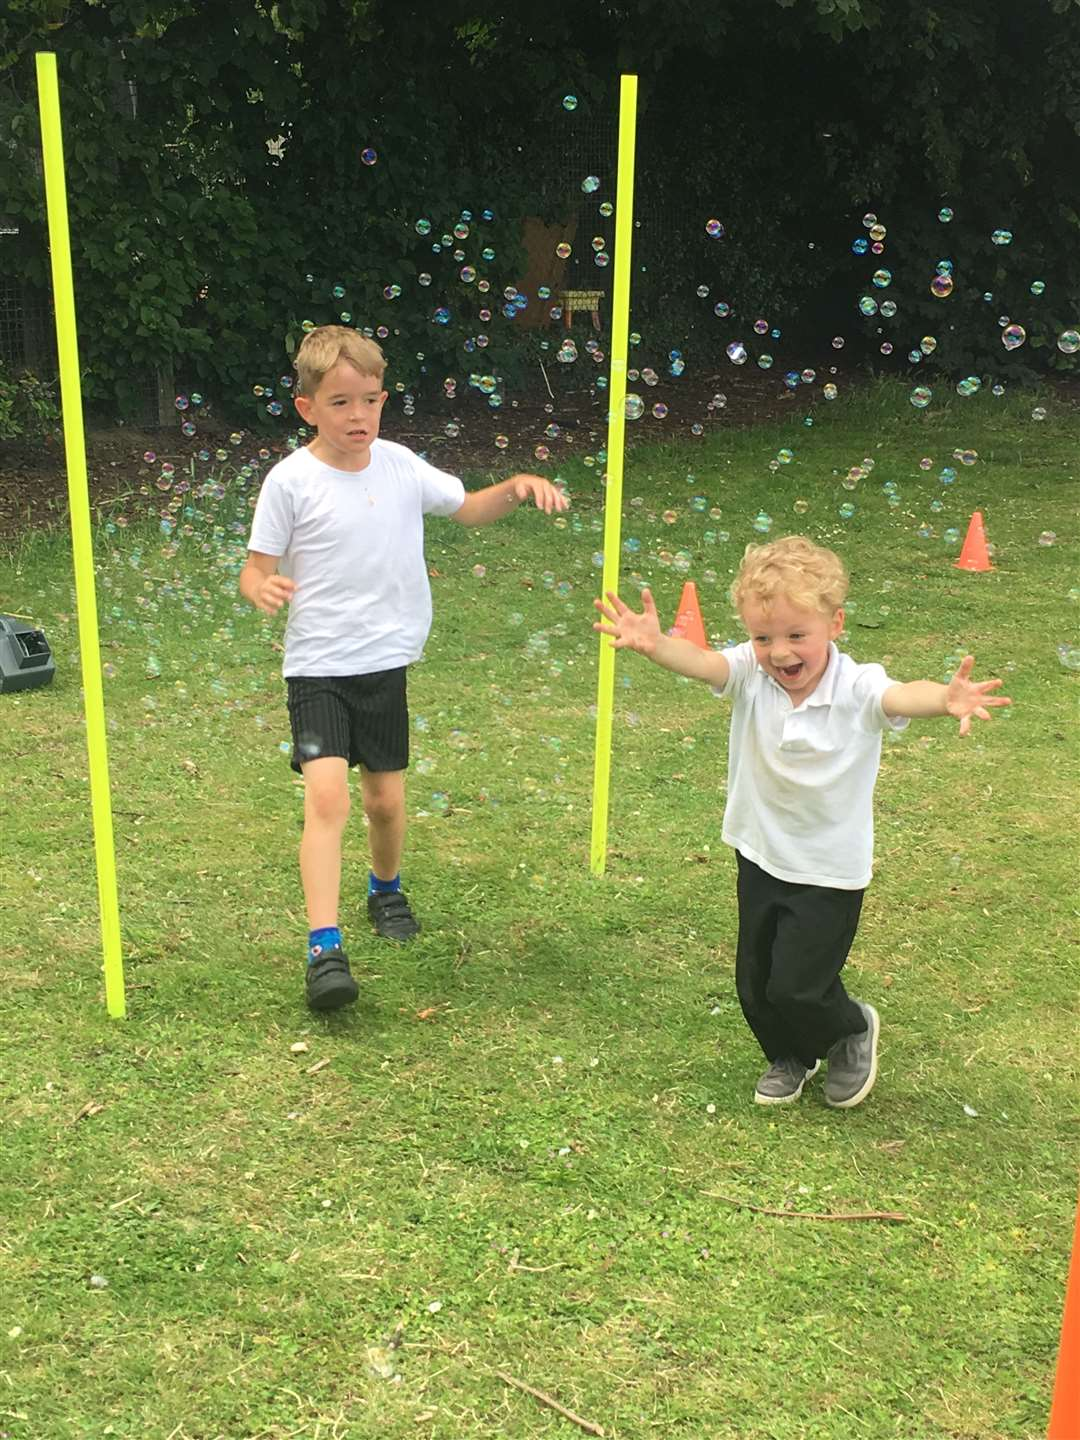 Tyler Gray and Oscar Smith at the bubble run at Tollgate Primary School in Bury St Edmunds.